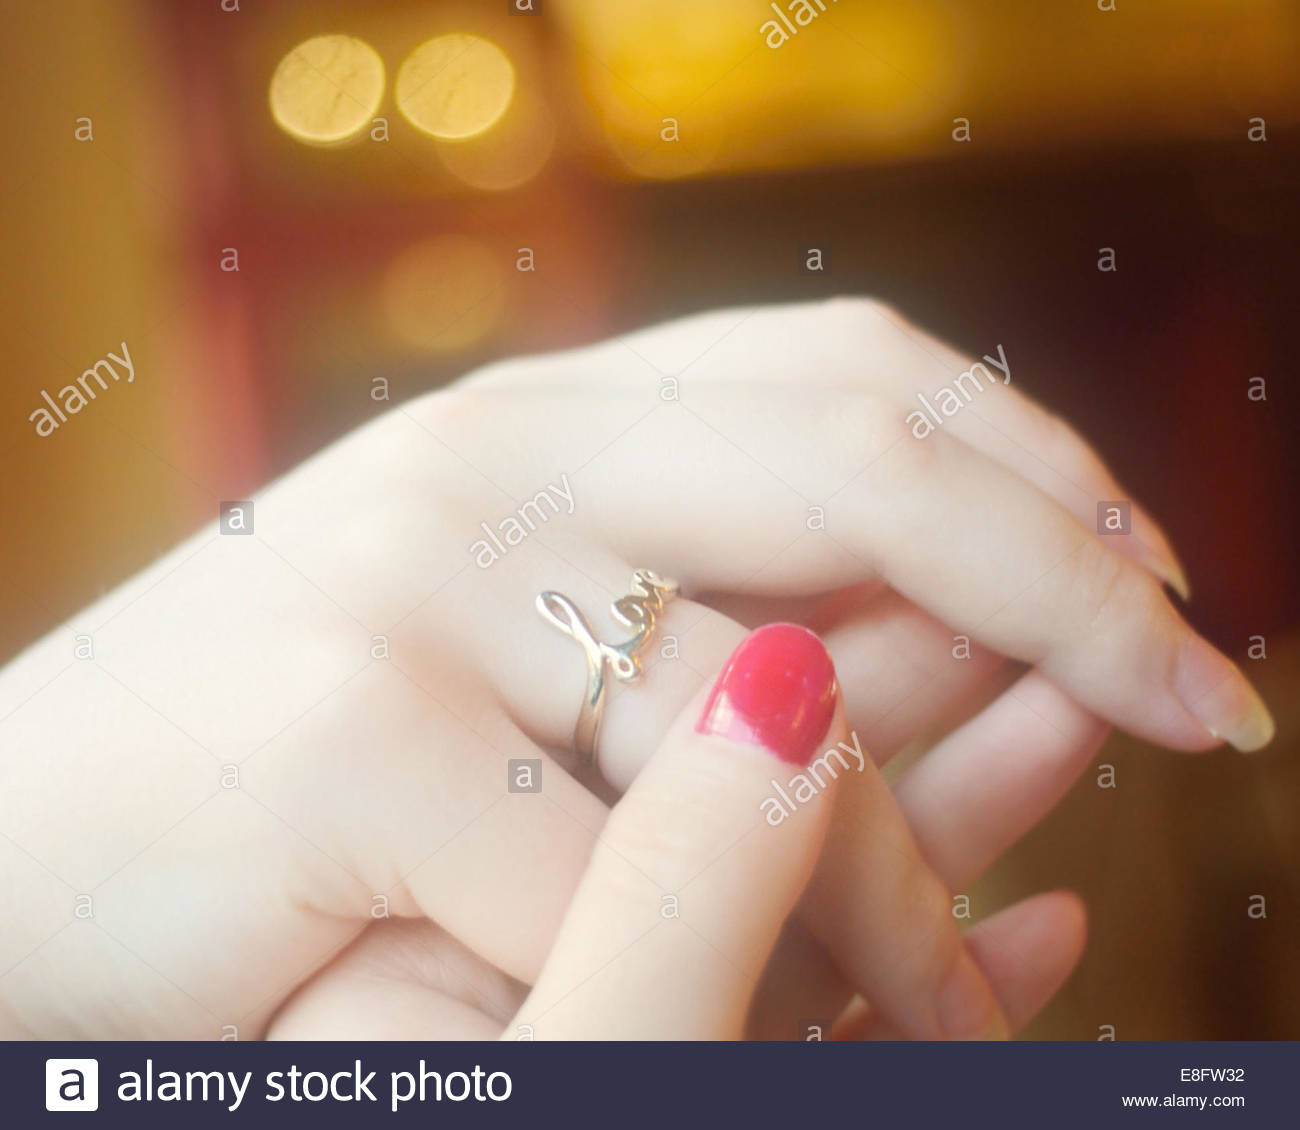 View of hands with love ring - Stock Image